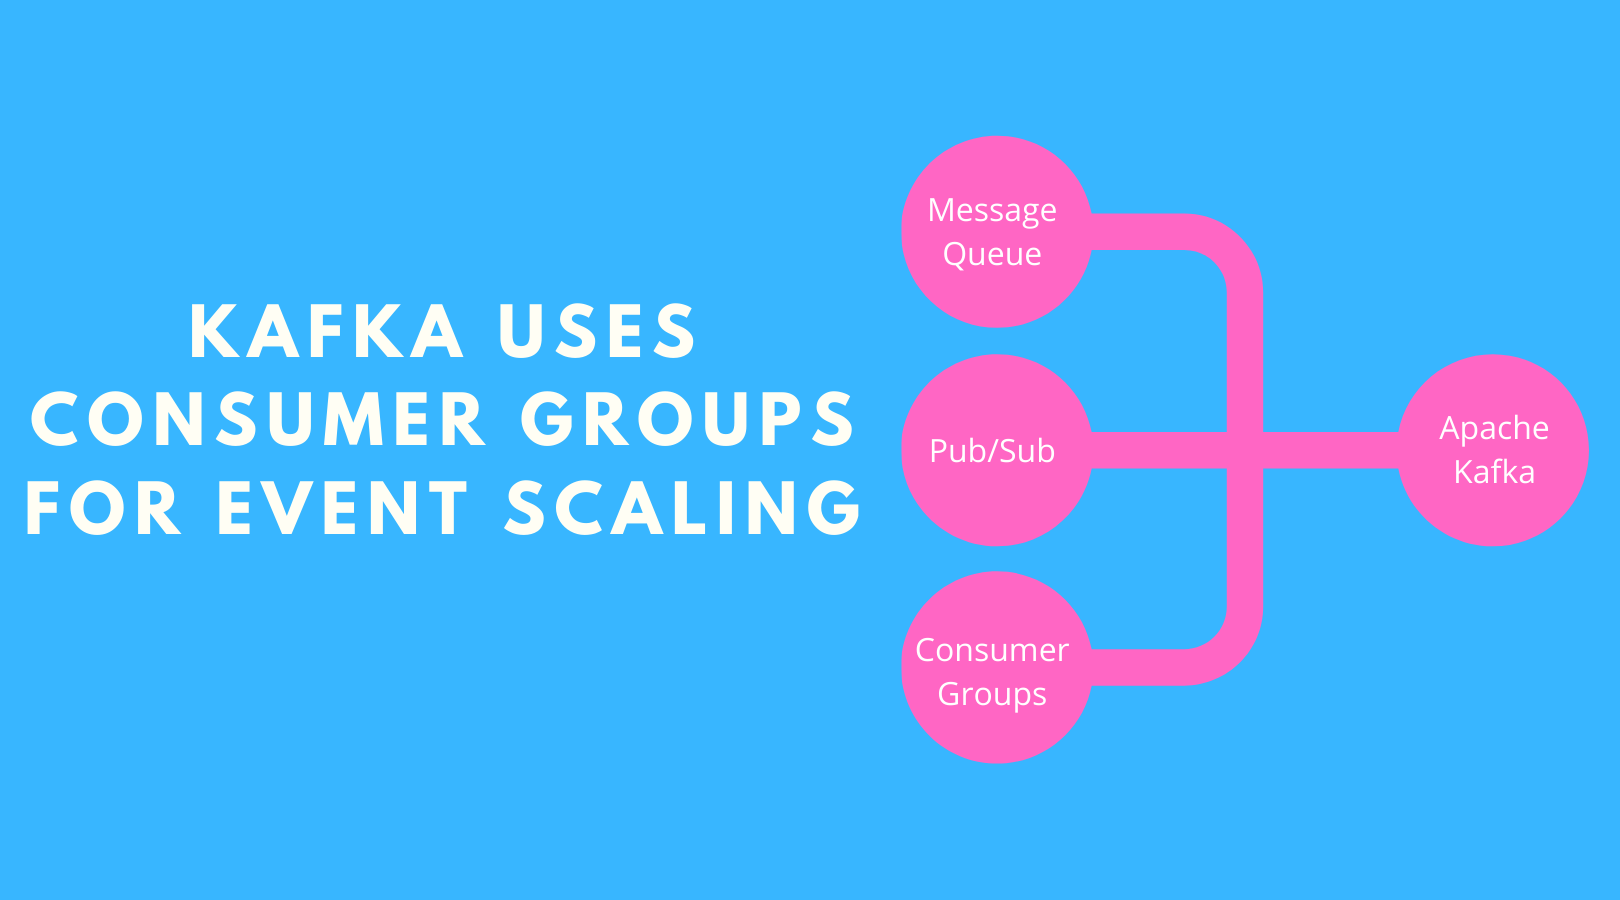 Kafka Uses Consumer Groups for Scaling Event Streaming